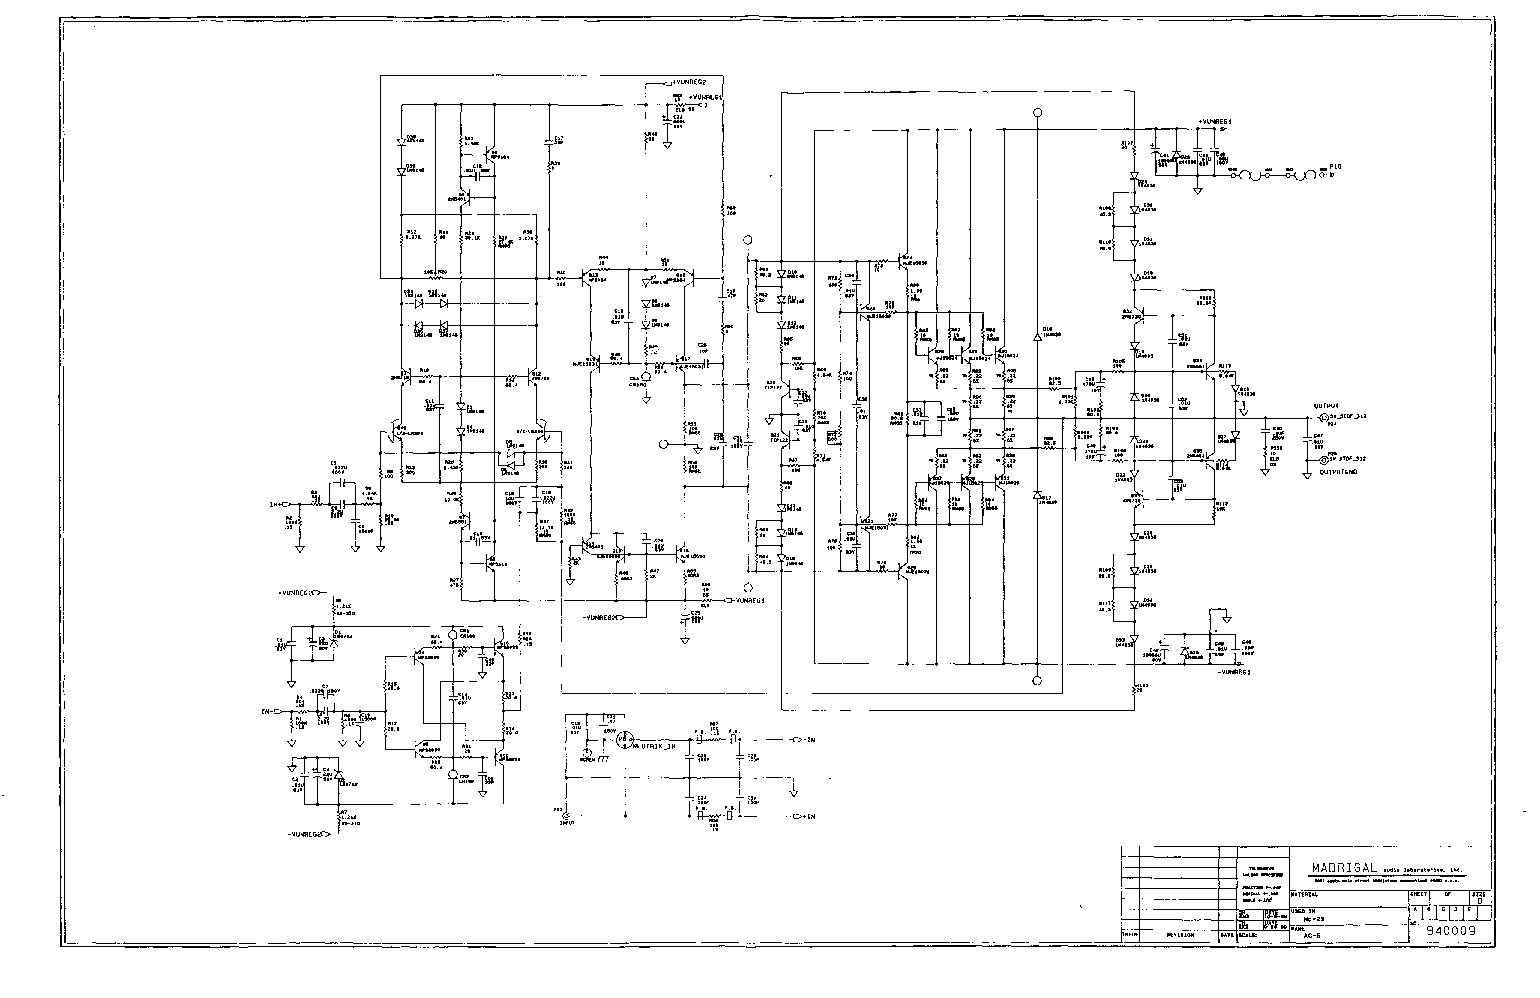 How To Make Simplest Inverter Circuit likewise 52571 Haswell  ing Whos Upgrading 8 besides Three Circuits Of Pre  Tone Controls By Ne5532 in addition Small Fm Receiver together with Radiation Sensor. on audio wiring diagram